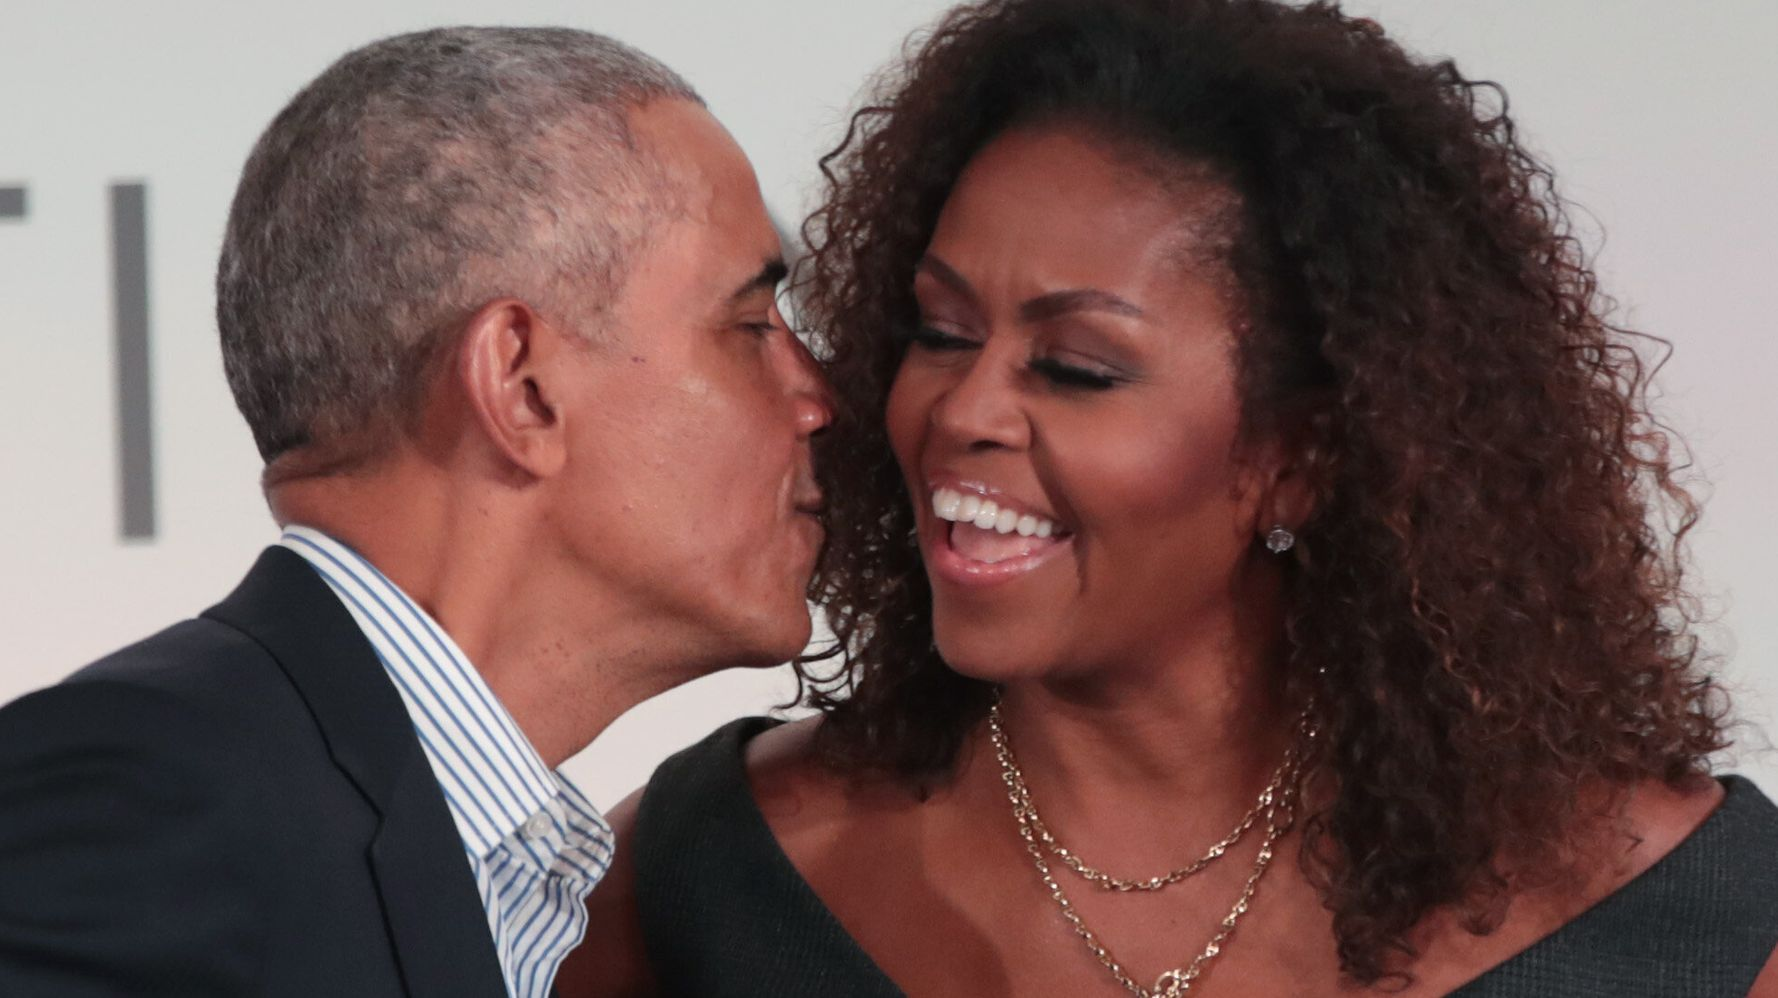 Westlake Legal Group 5e47c3902200003200d1cfb6 Snow Angels And Dancing: Obamas Celebrate Valentine's Day With Sweet Pictures